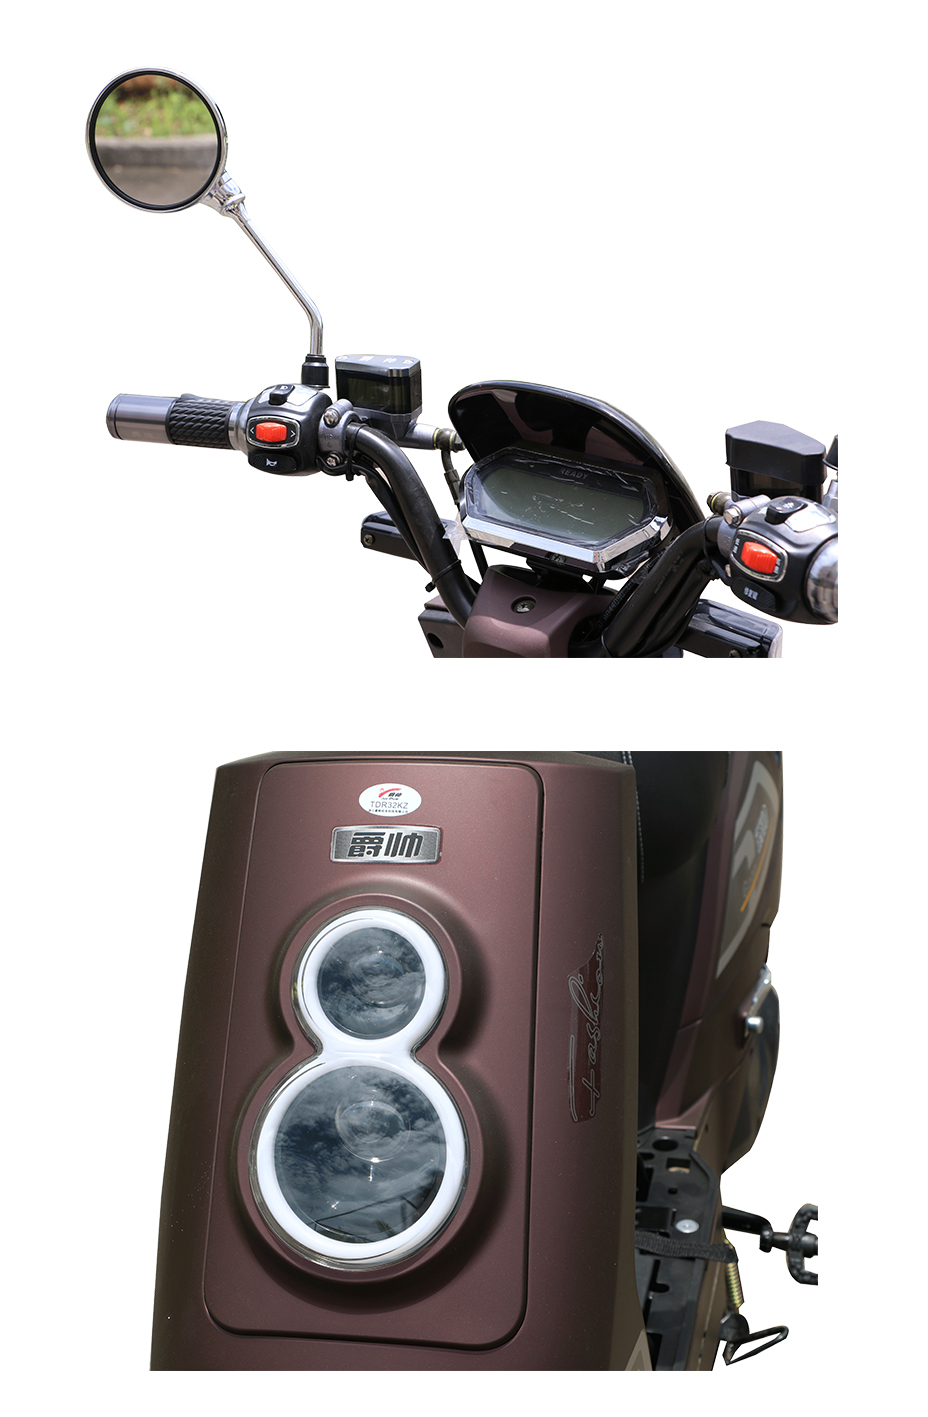 HTB1roeLoOMnBKNjSZFoq6zOSFXae - Electrical motor Motorbike Electrical Bike For Man Commonplace Sort Made In Aluminum Alloy Body With One/Two Seat Electrical Scooter